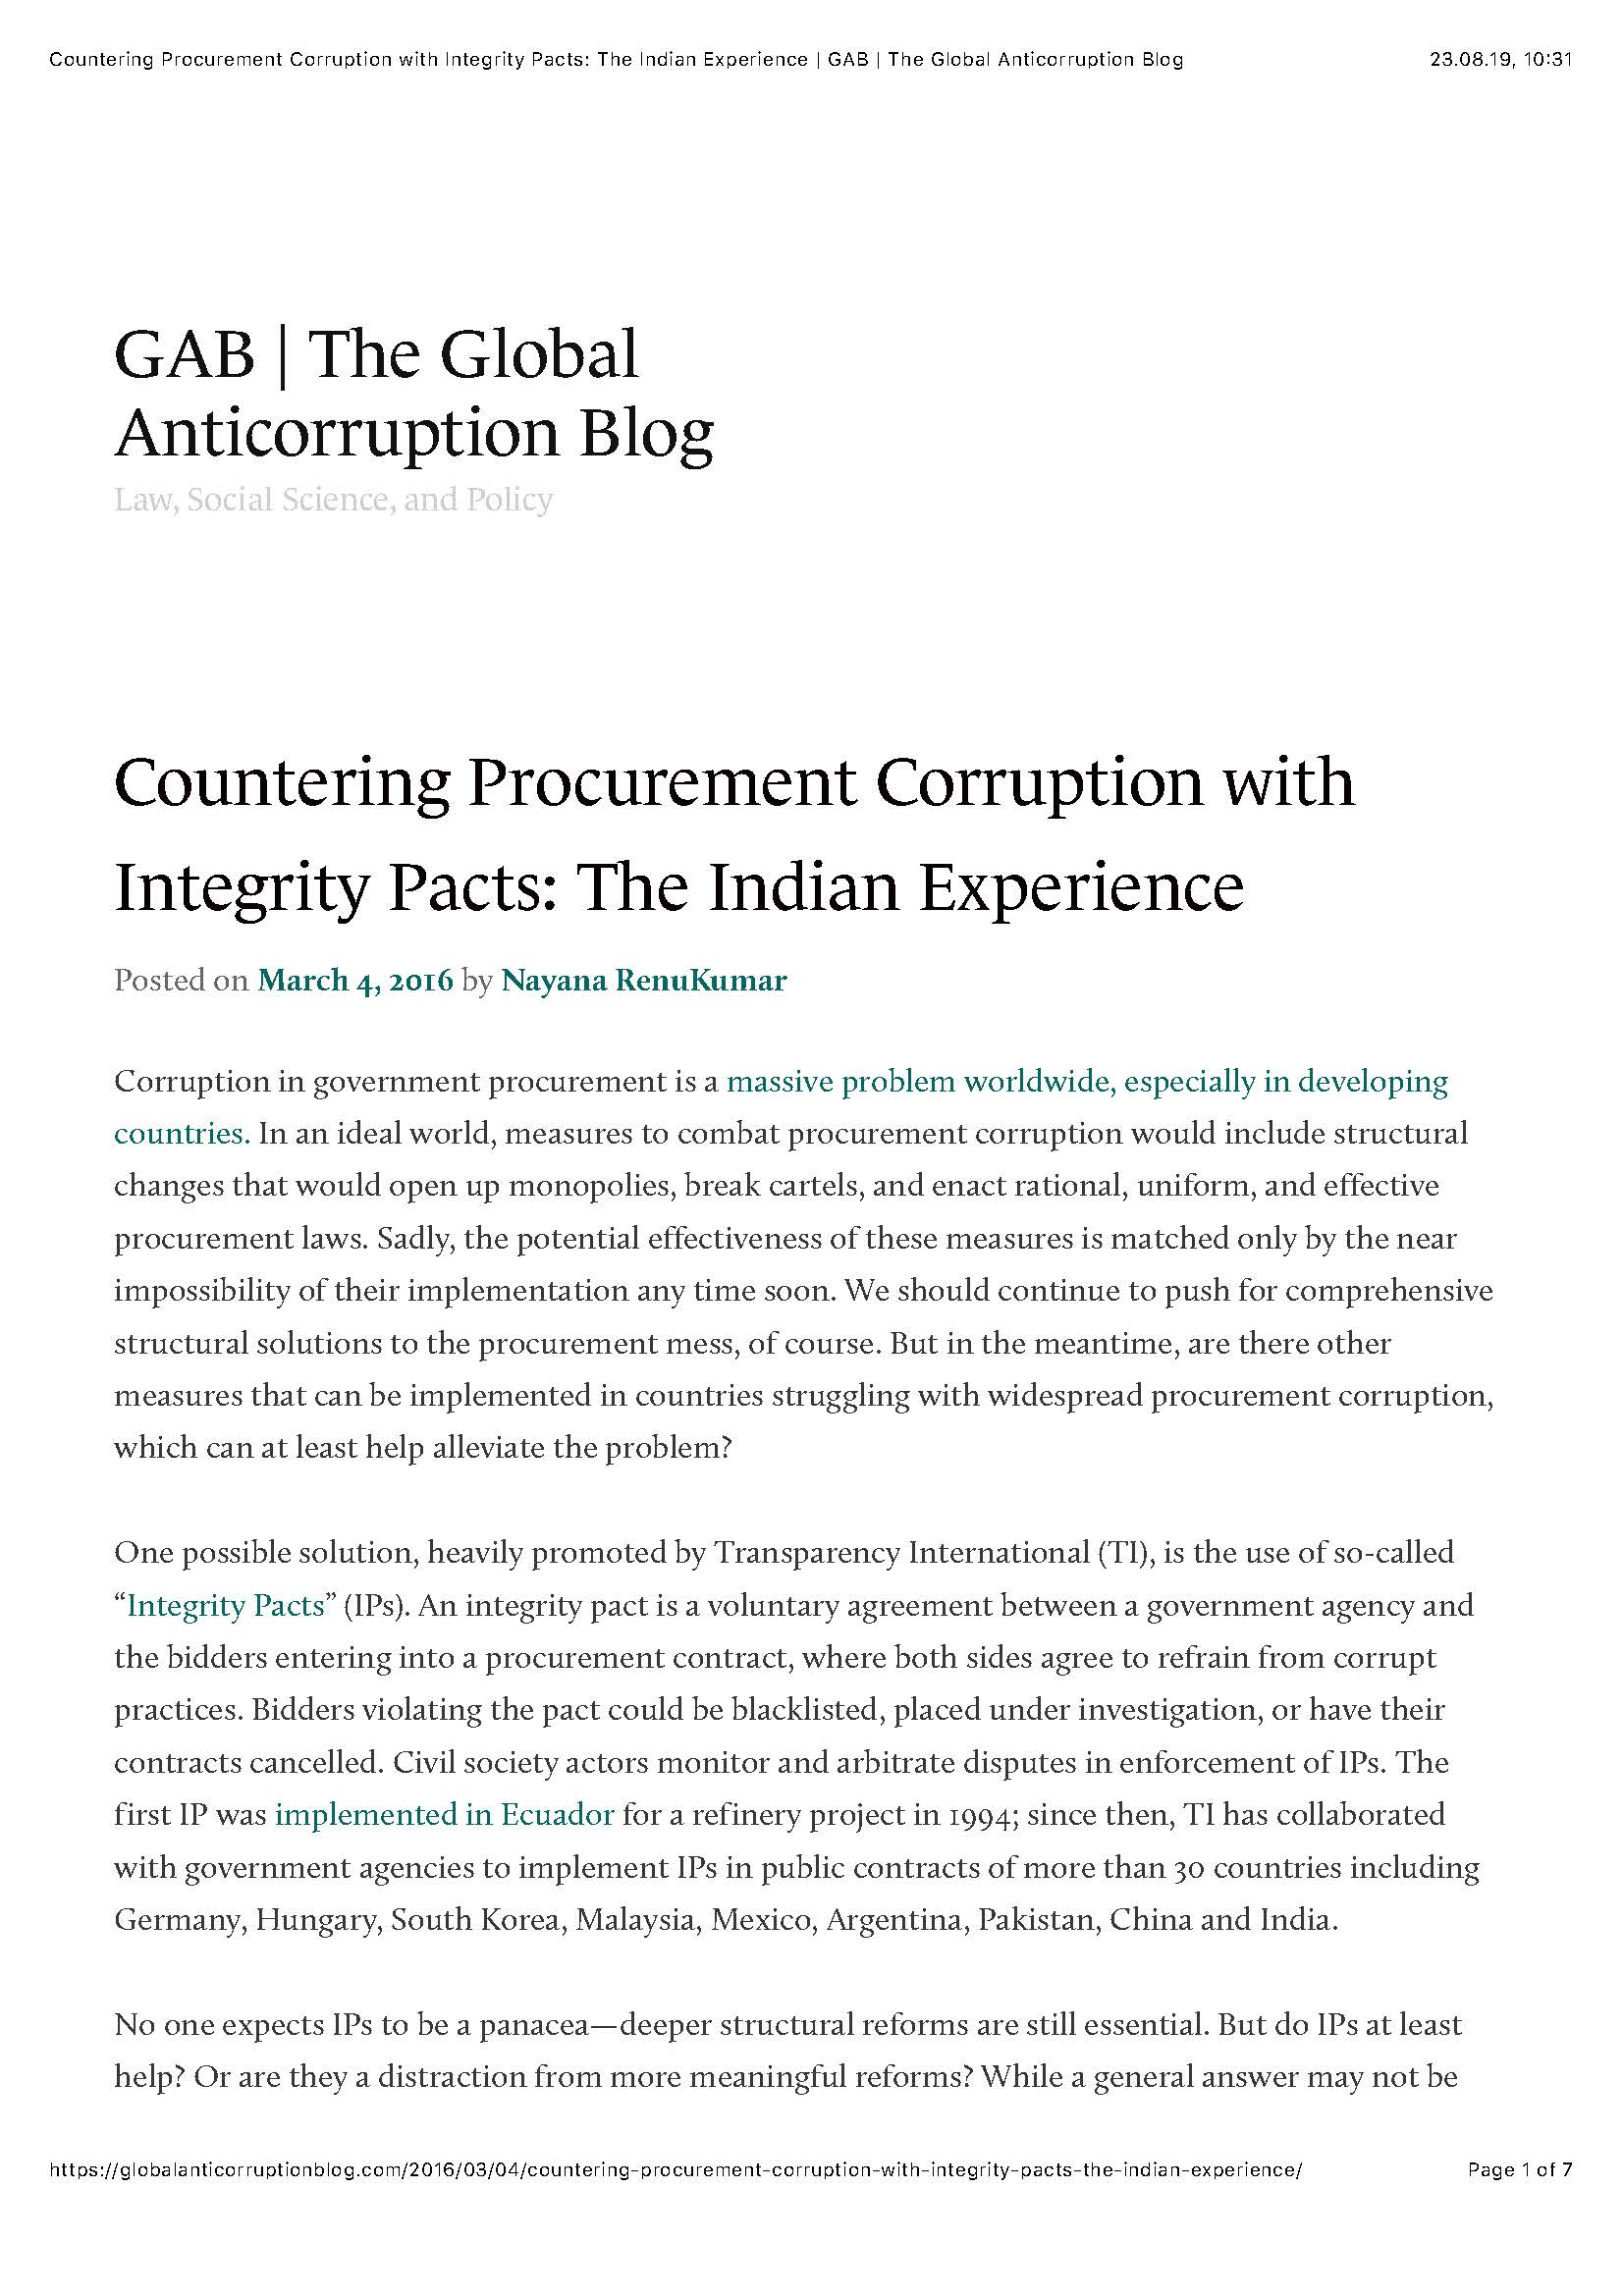 Pages from GAB_Countering Procurement Corruption with Integrity Pacts The Indian Experience_2016.jpg